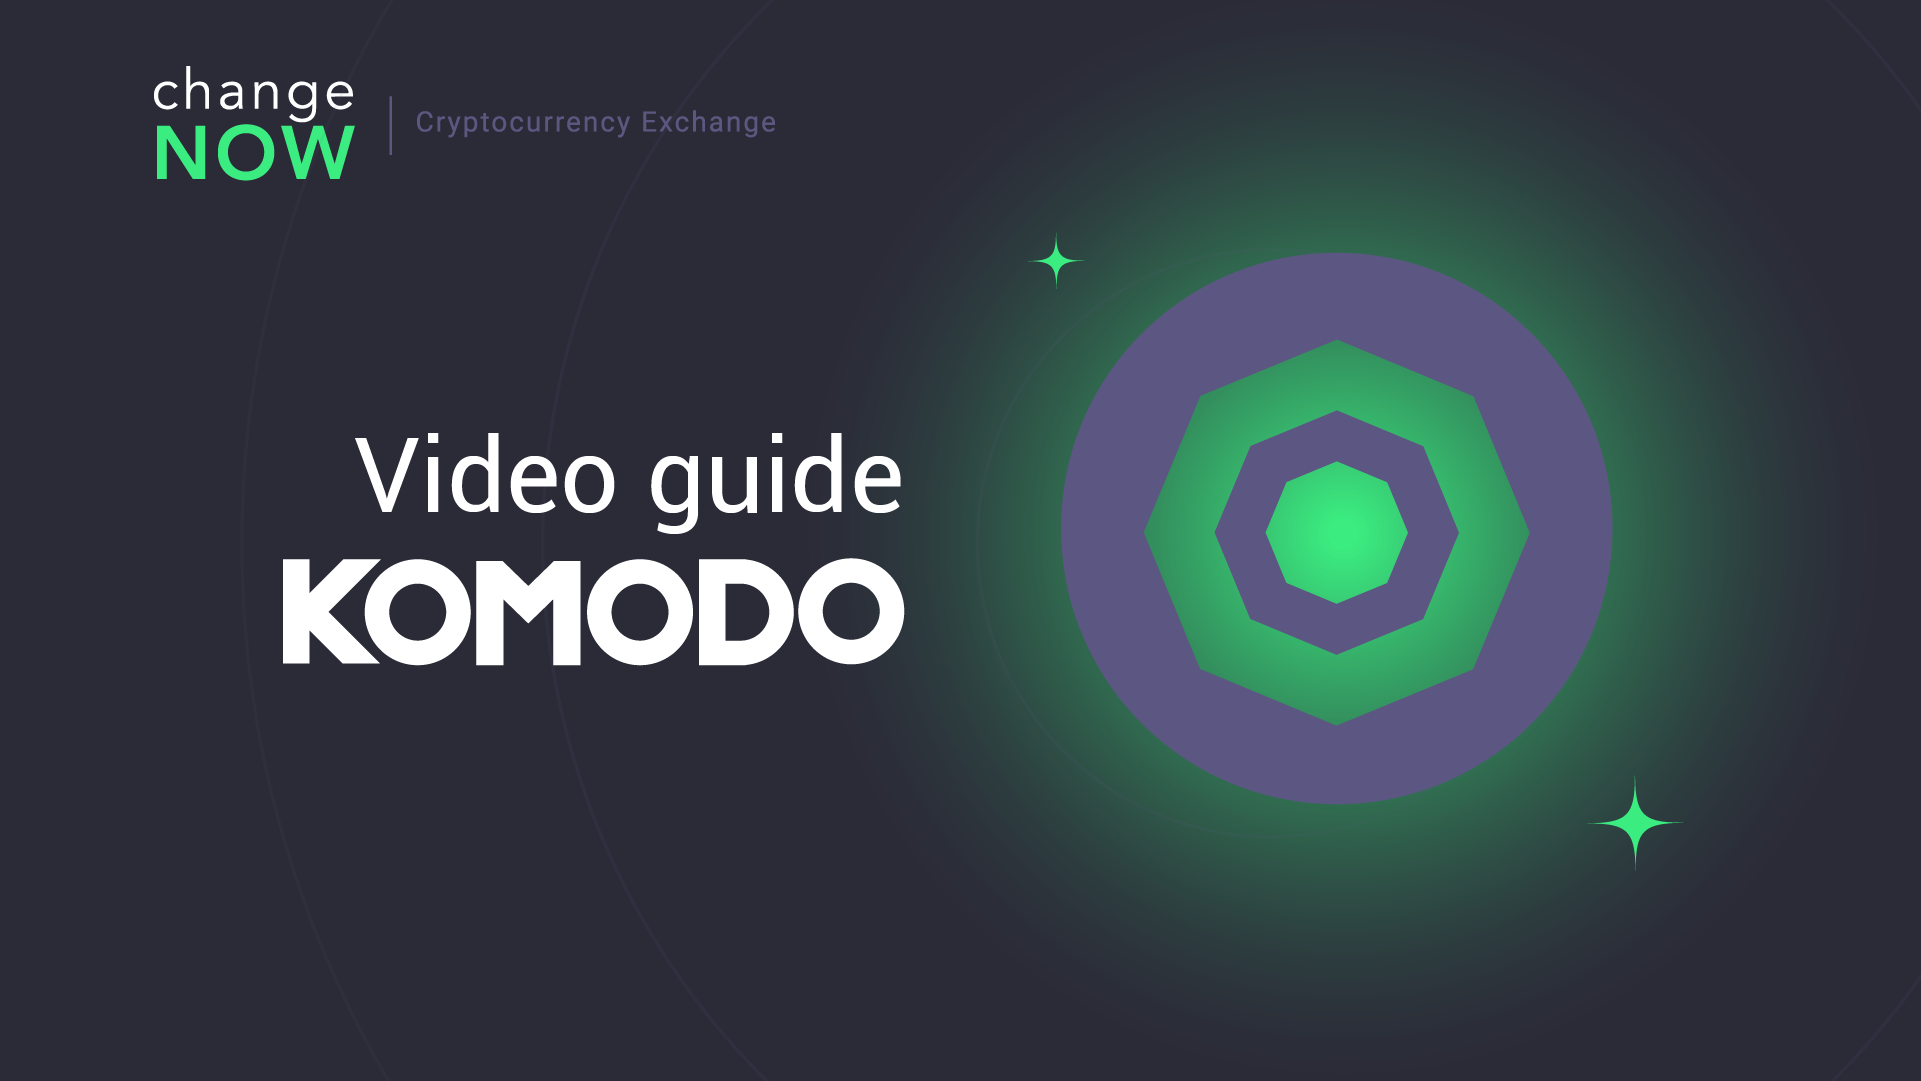 How To Buy Komodo (KMD) on ChangeNOW.io - Quick and Easy Swaps with More than 150 Cryptos [GUIDE]